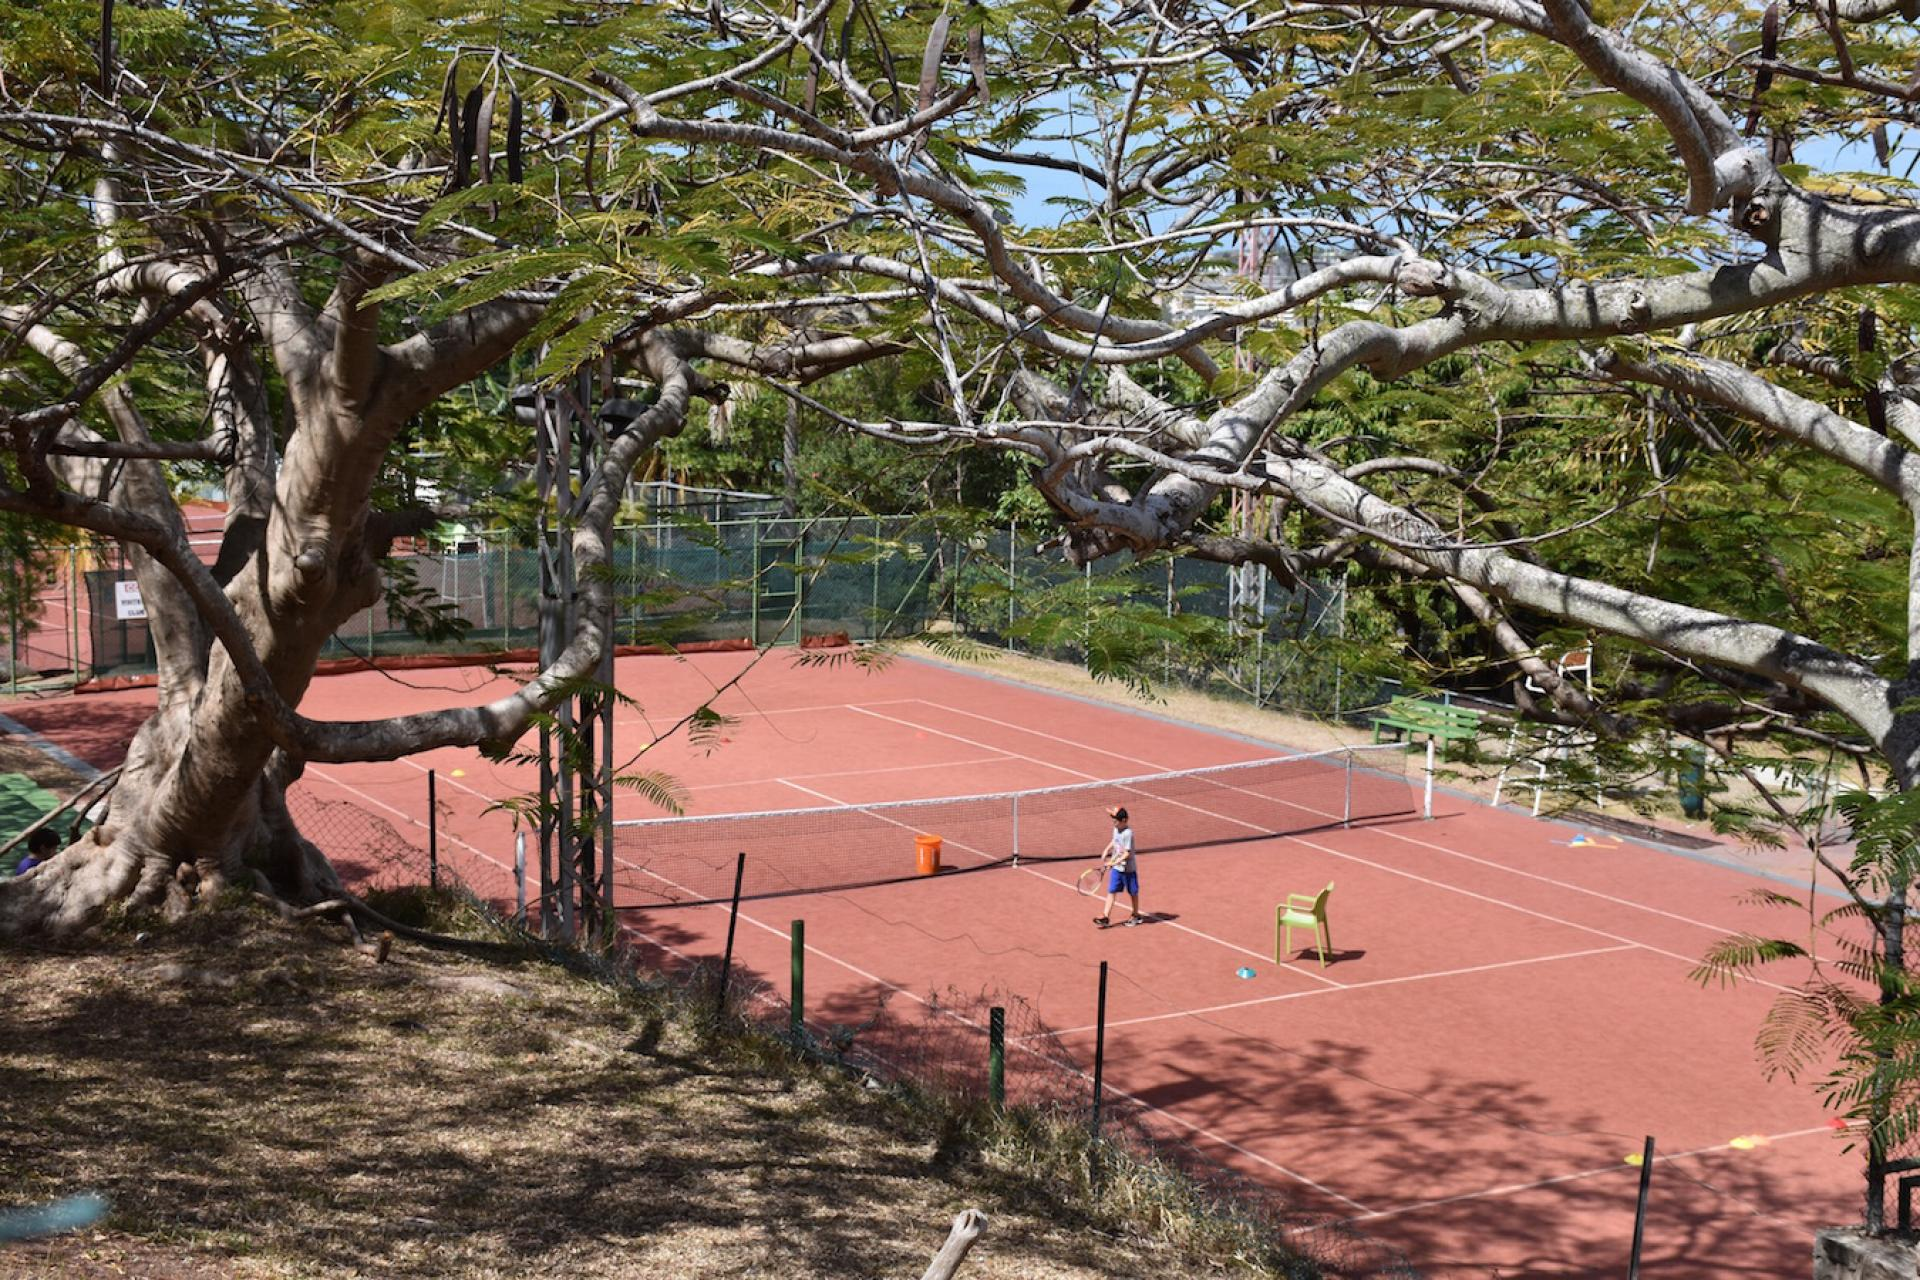 Tennis Club Mont Coffyn